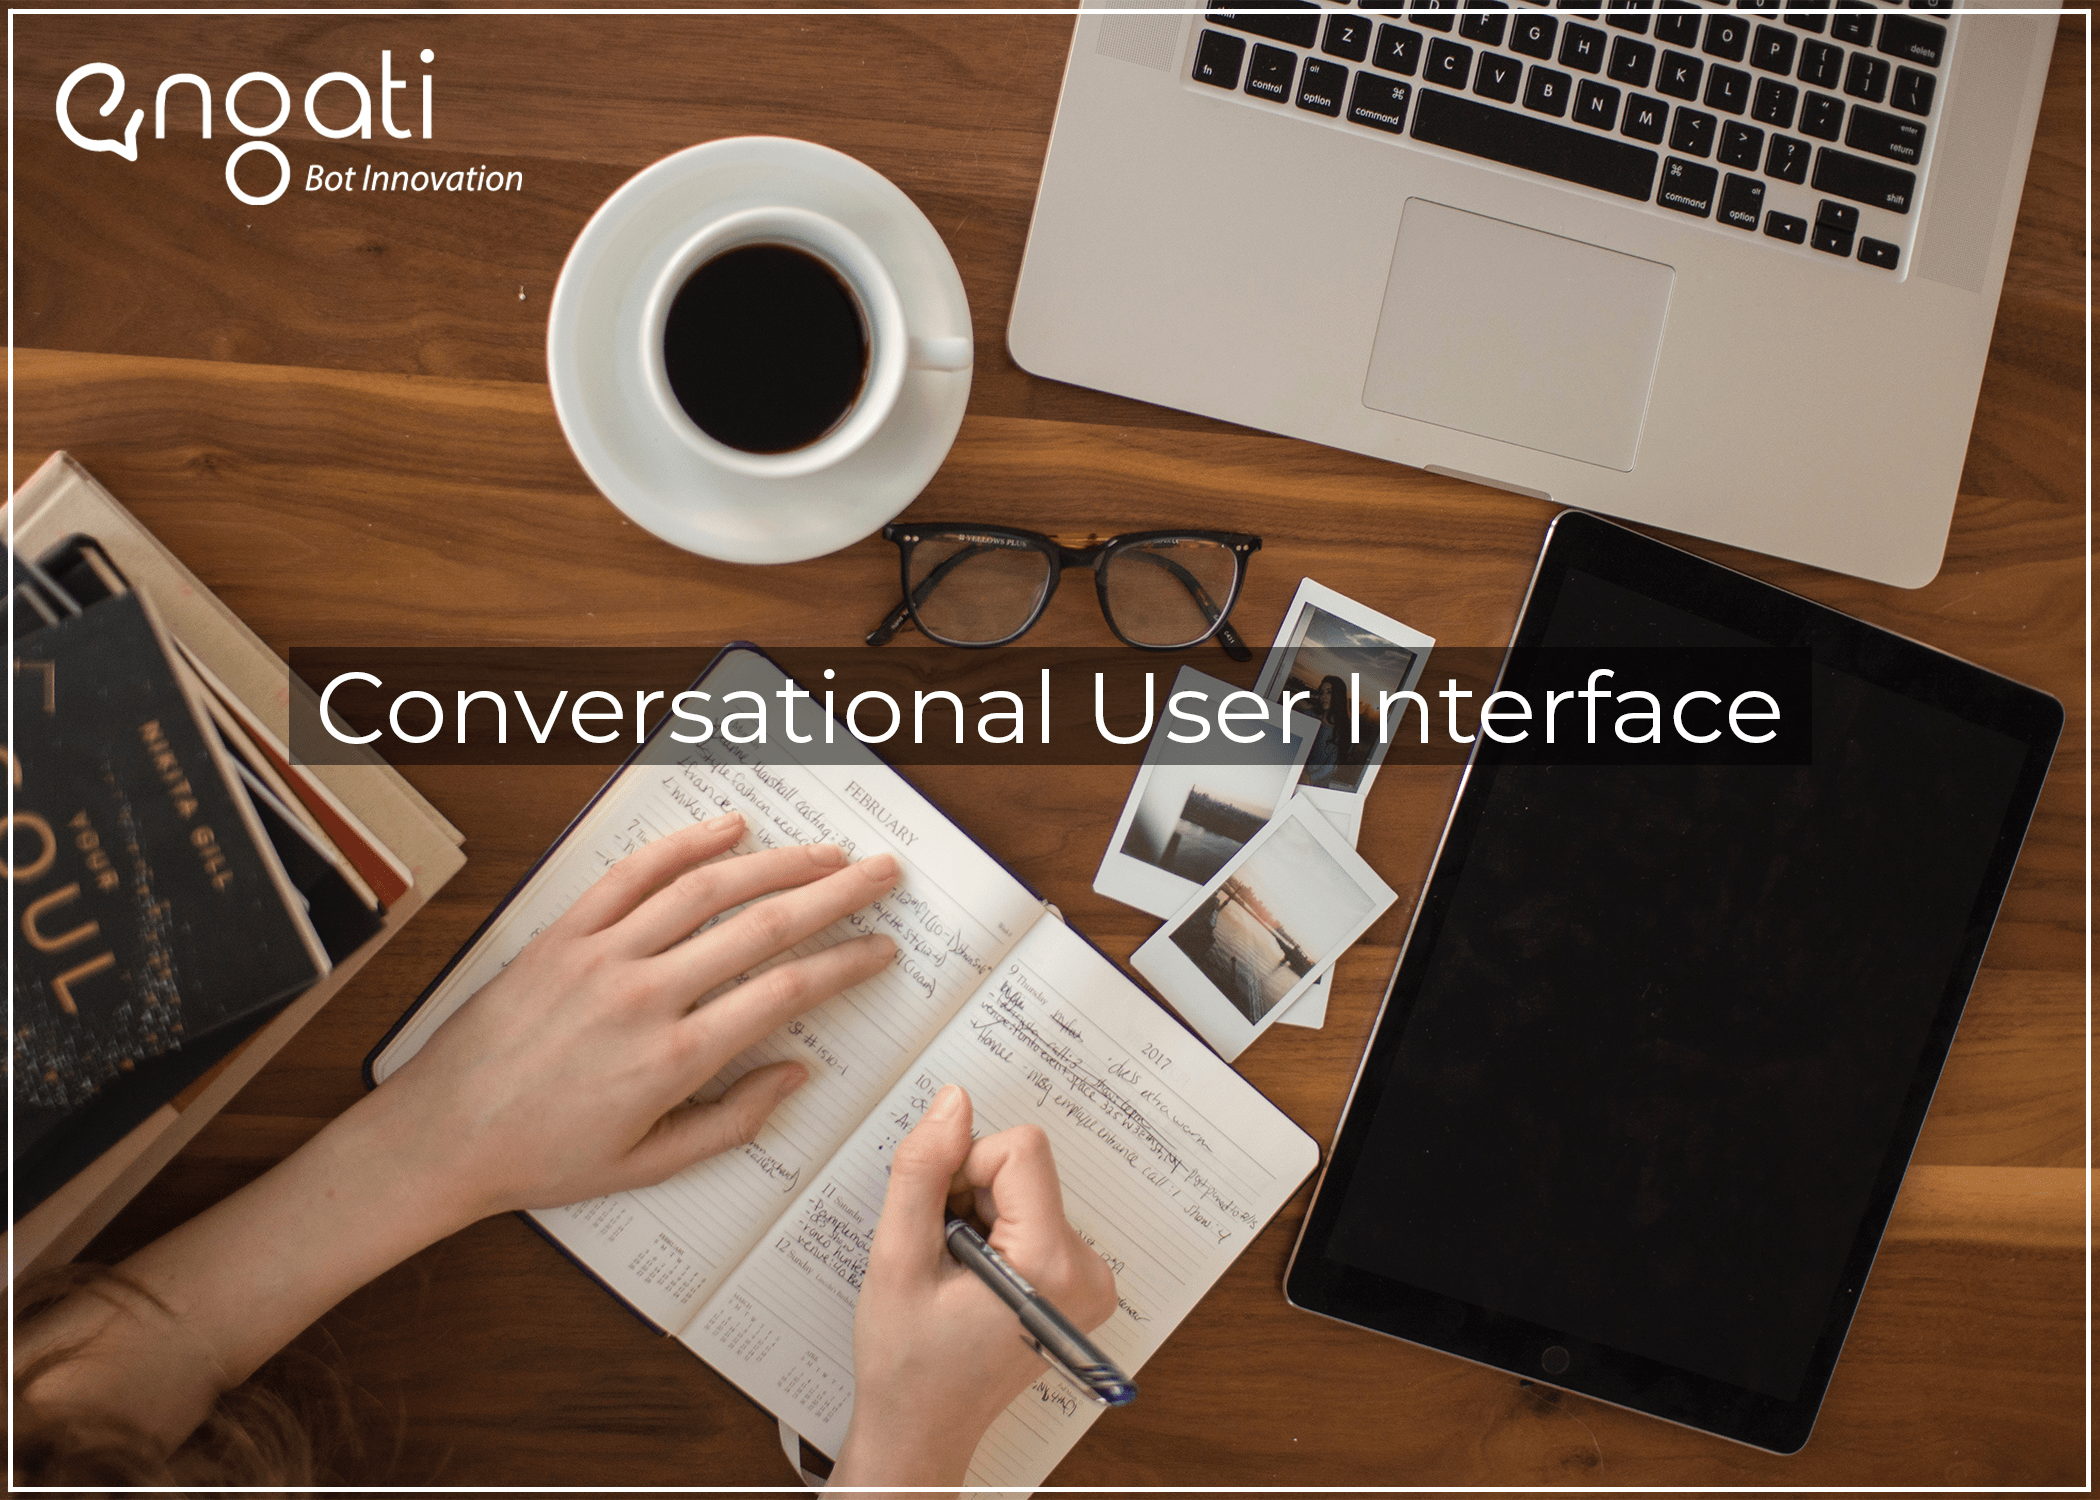 Writing dialogues for Conversational UI